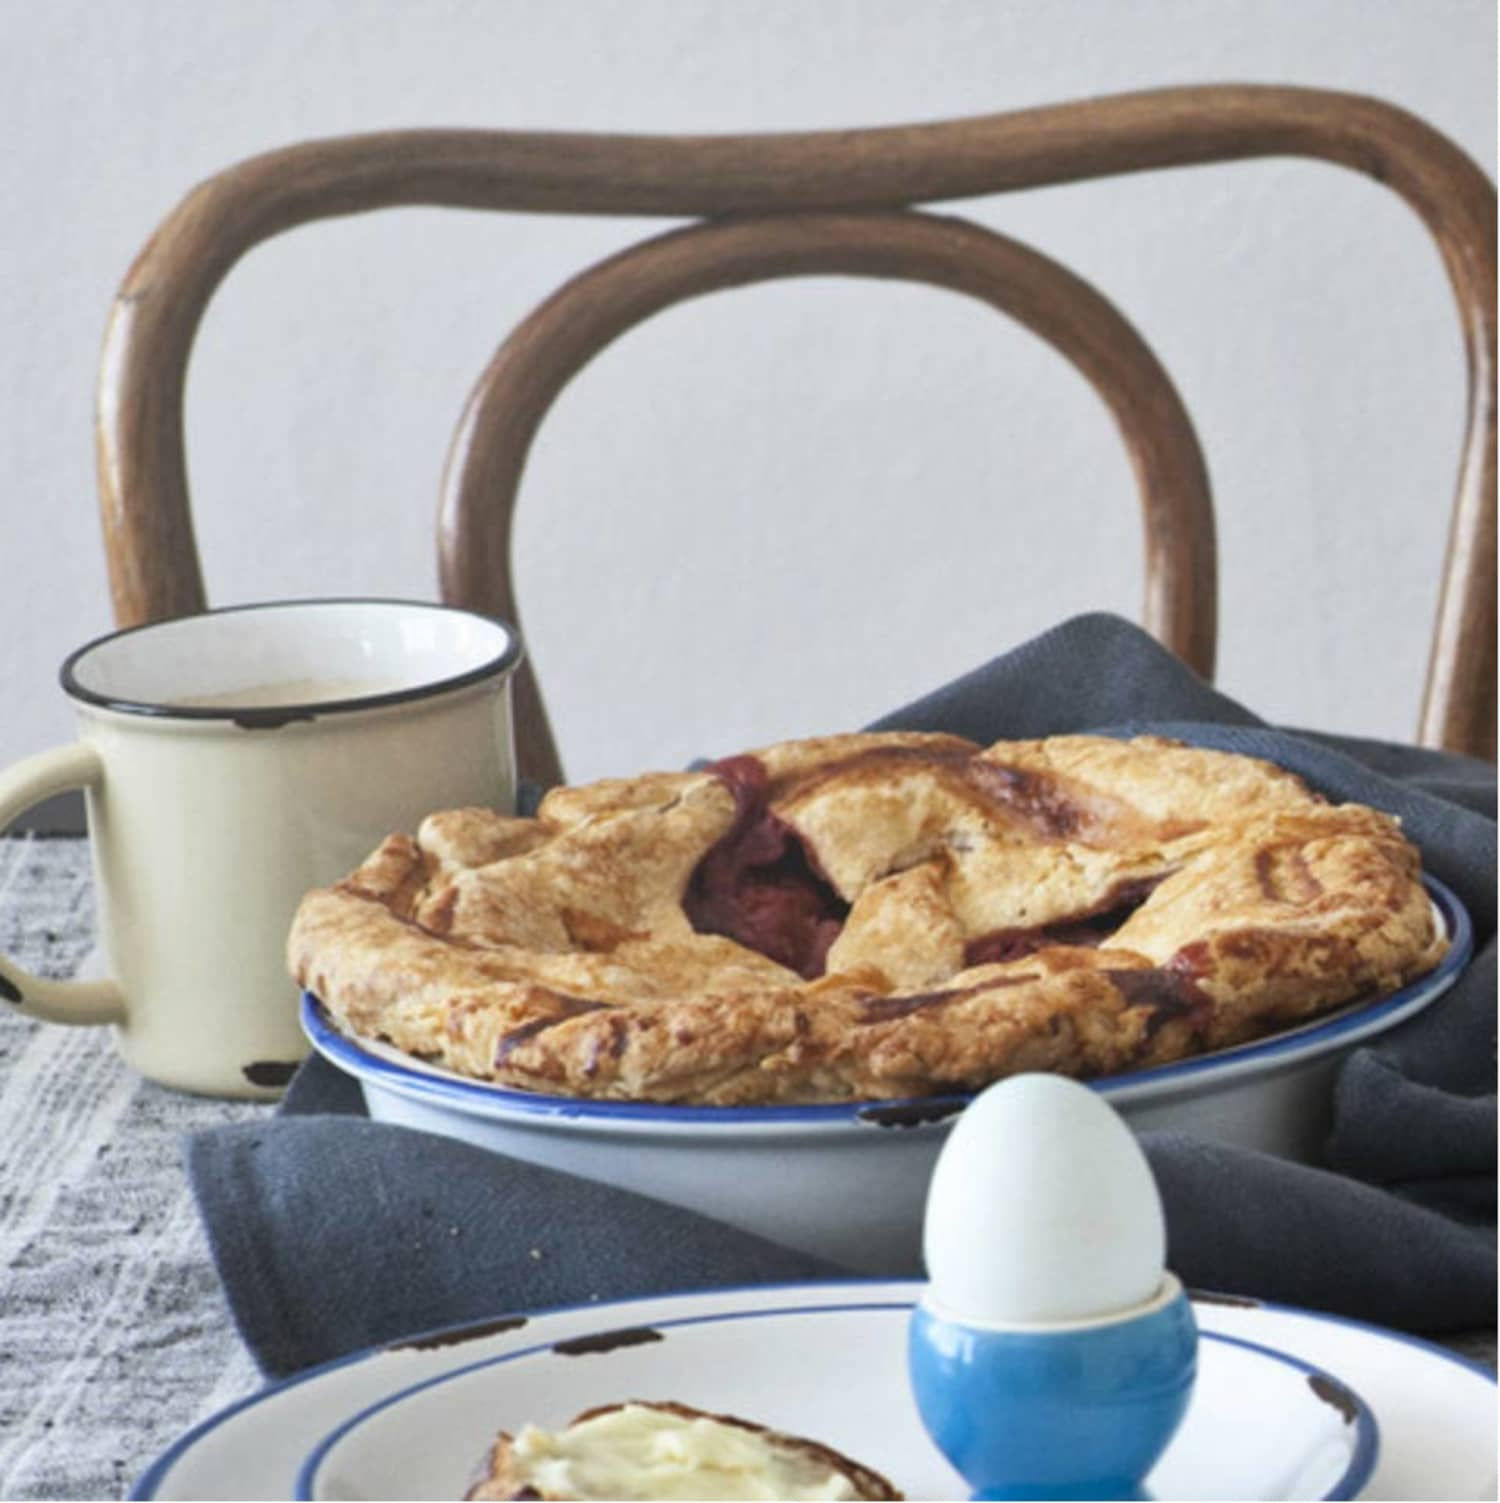 Tinware Ceramic Pie Plate From Canvas Kitchn